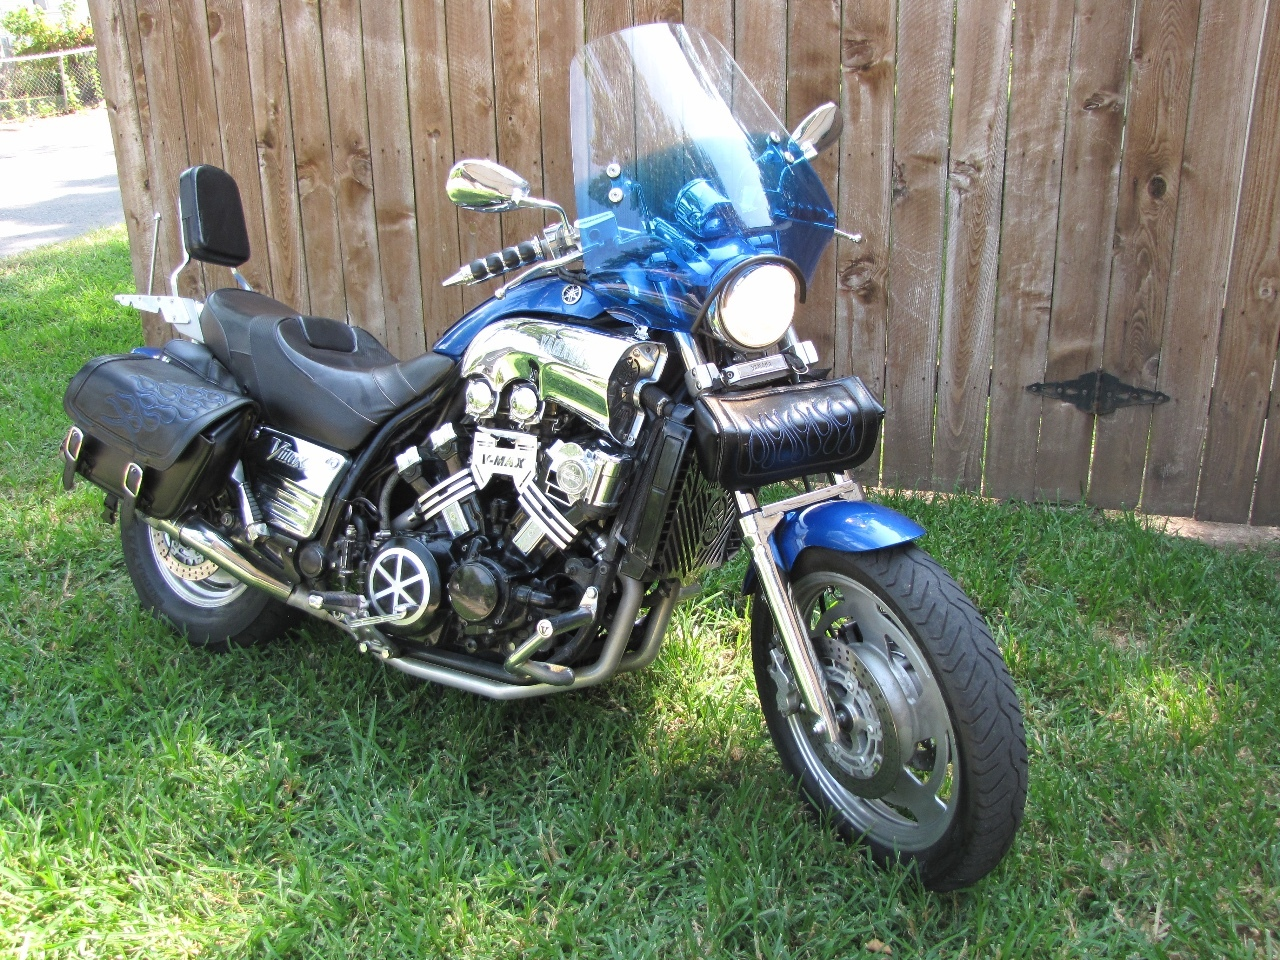 Yamaha 1200 Three Seater Motorcycles For Sale 16 Vmax Fuel Filter